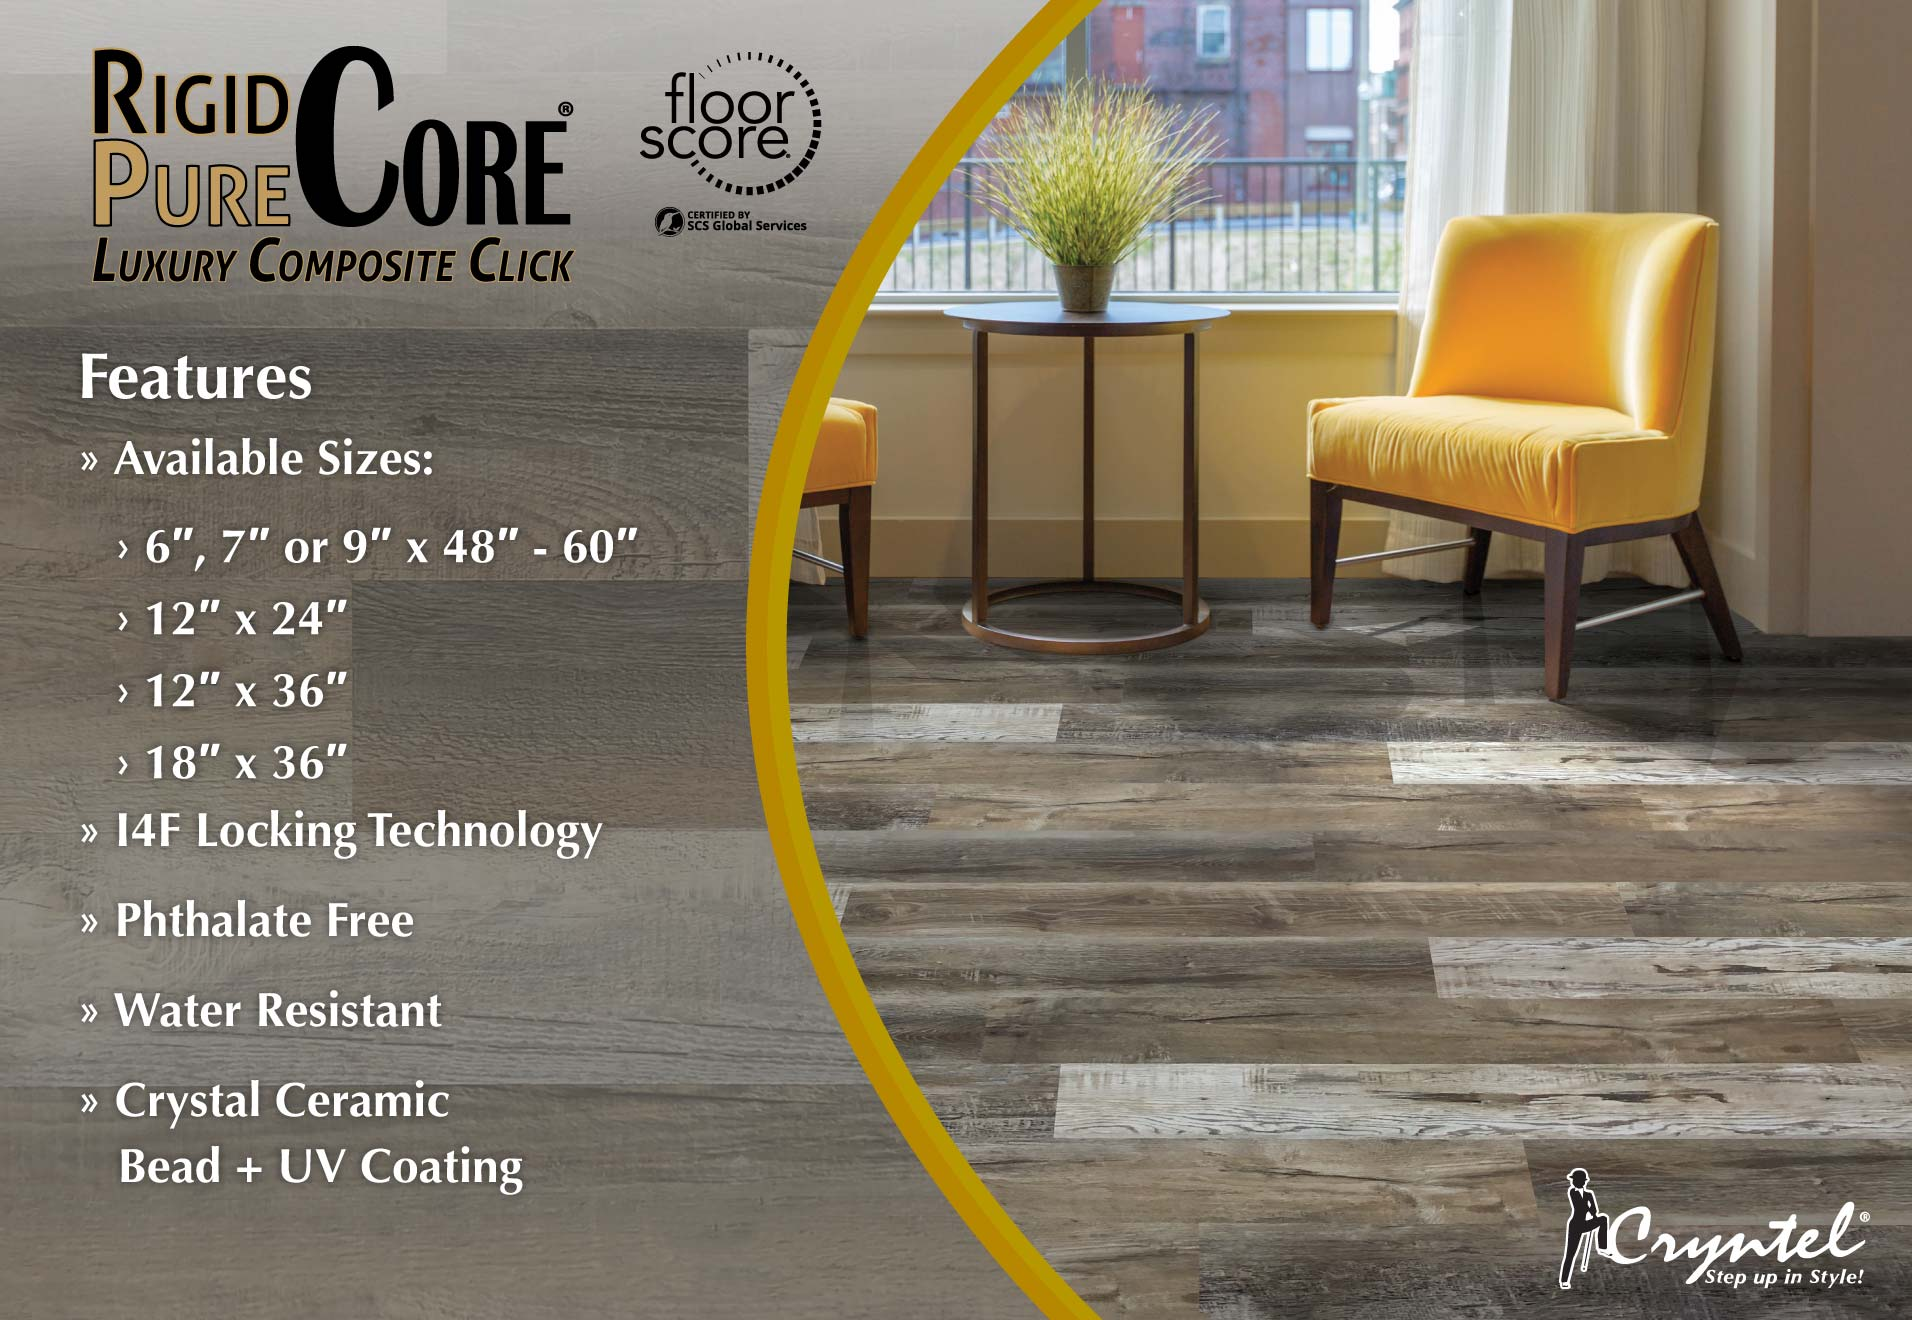 Rigid Pure Core Luxury Composite Click